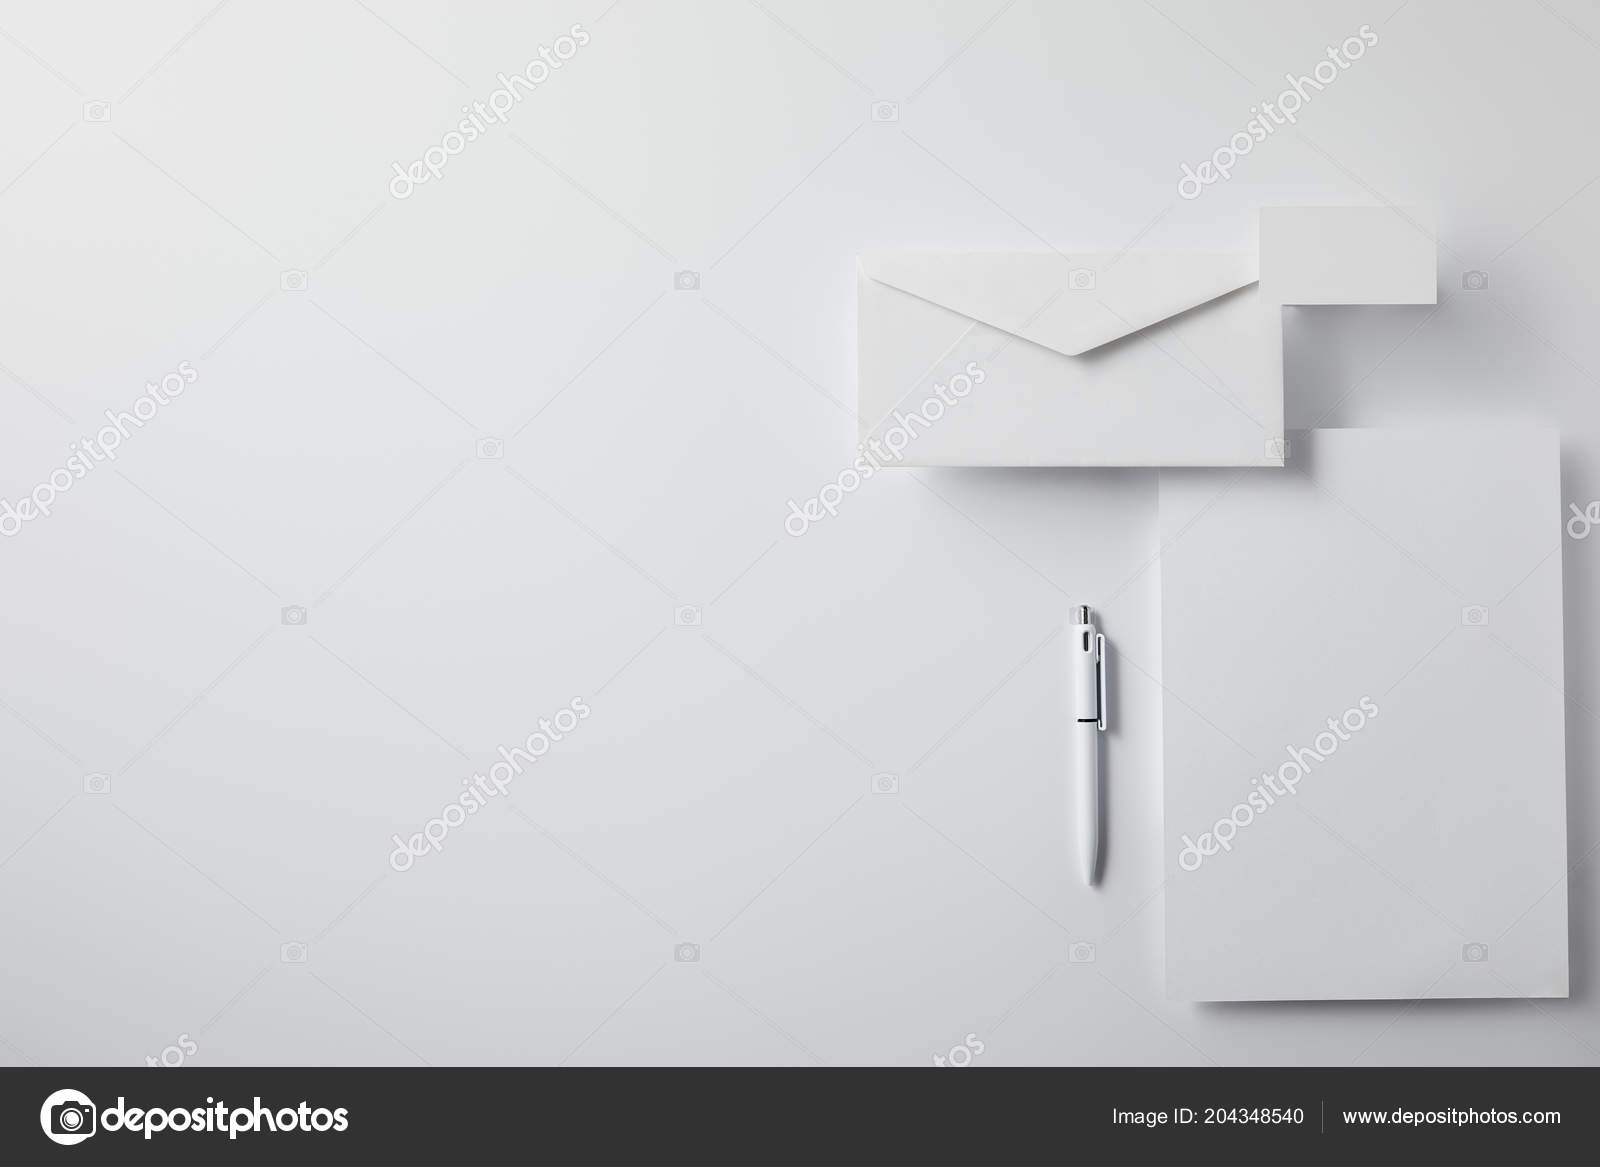 Top view layered envelope pen blank paper business card white top view layered envelope pen blank paper business card white fotografia de stock reheart Choice Image